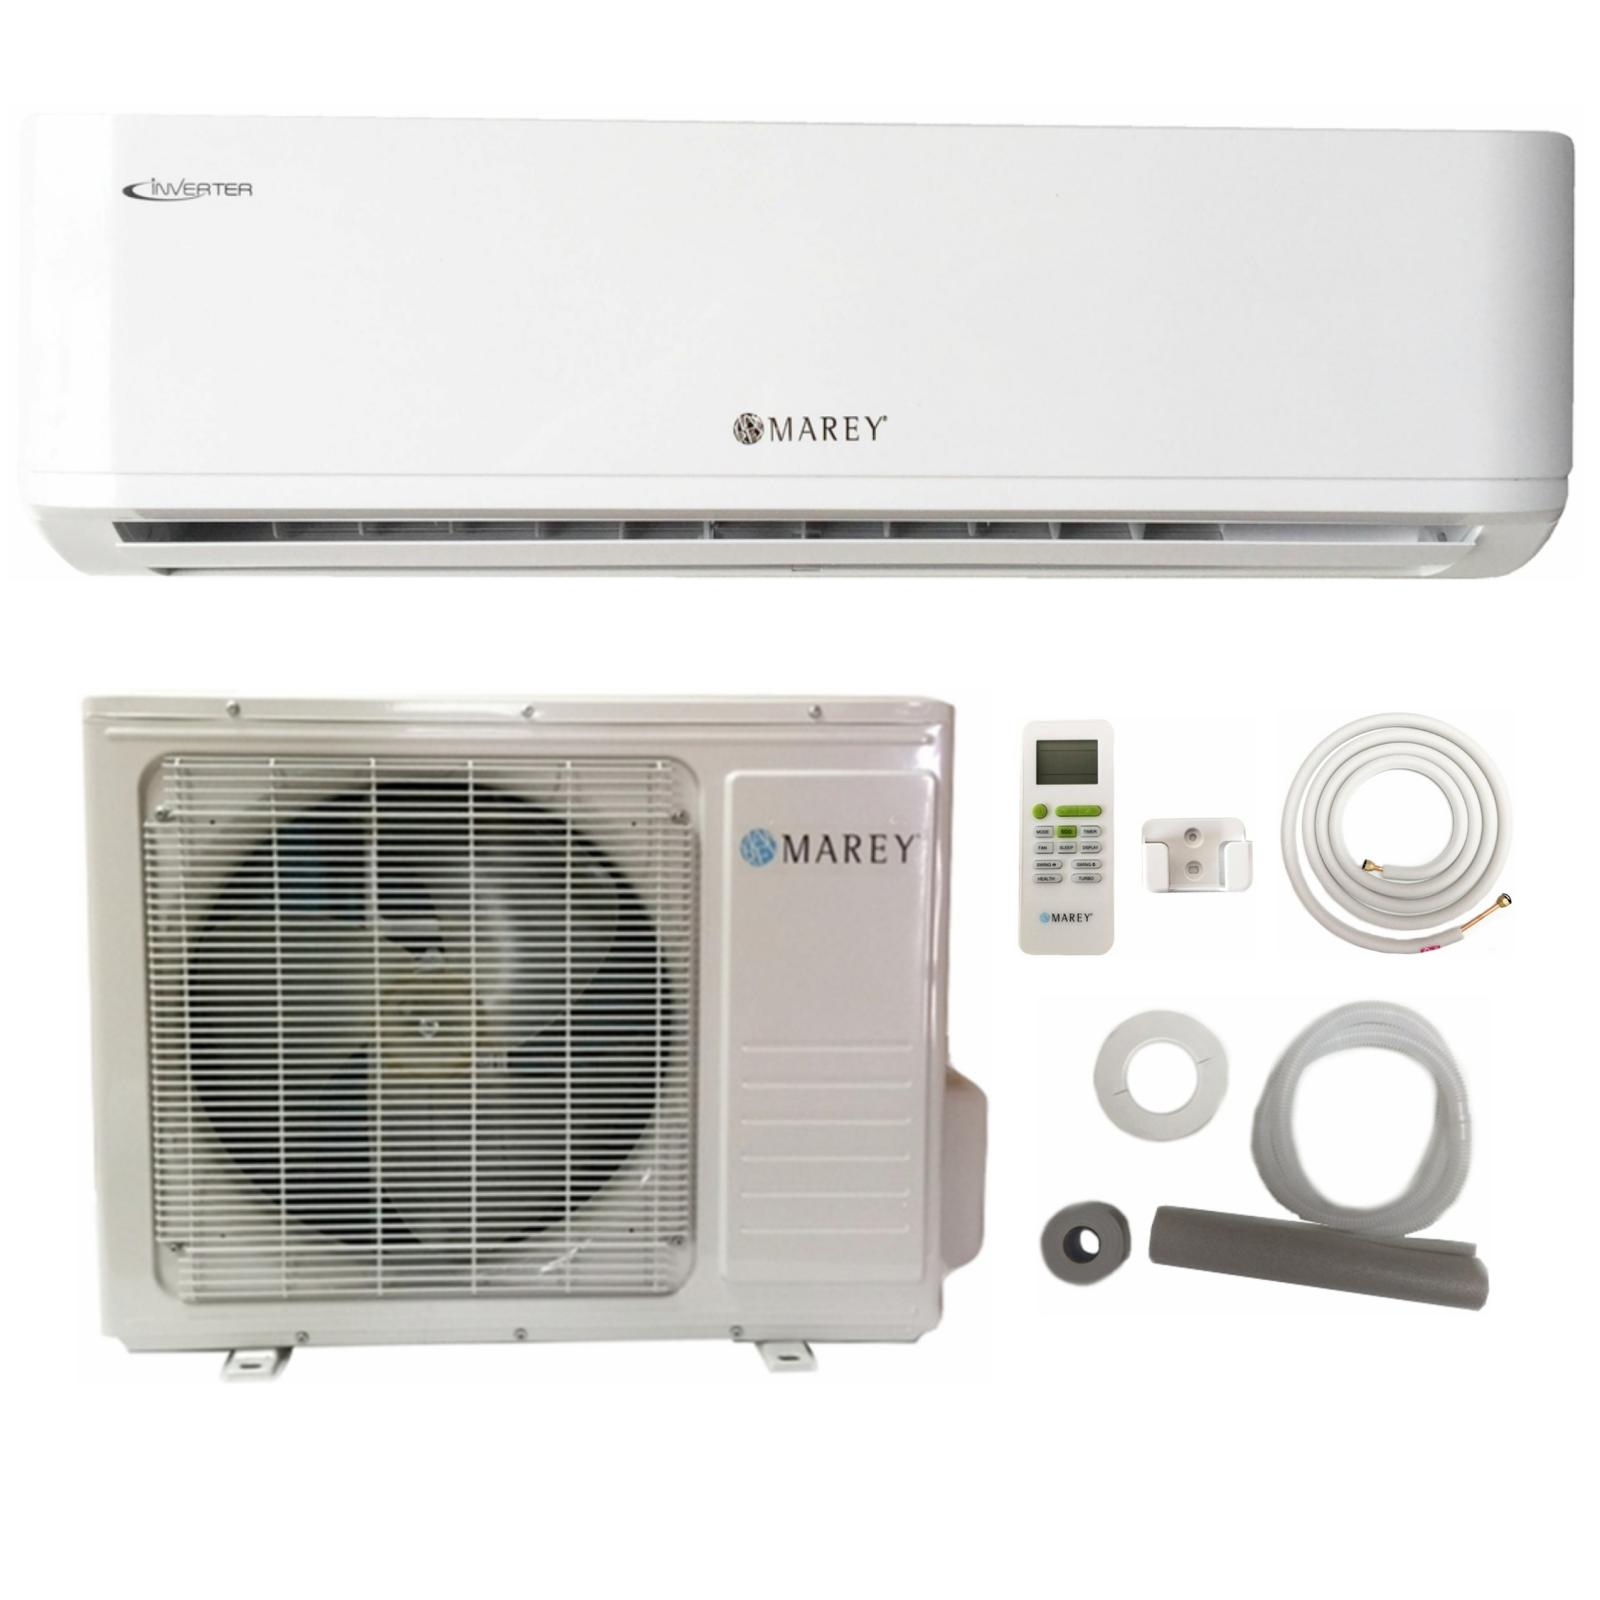 #5A6871 Marey 18000 BTU Mini Split Inverter Air Conditioner With  Most Recent 14780 Window Air Conditioner 220 Volts image with 1600x1600 px on helpvideos.info - Air Conditioners, Air Coolers and more